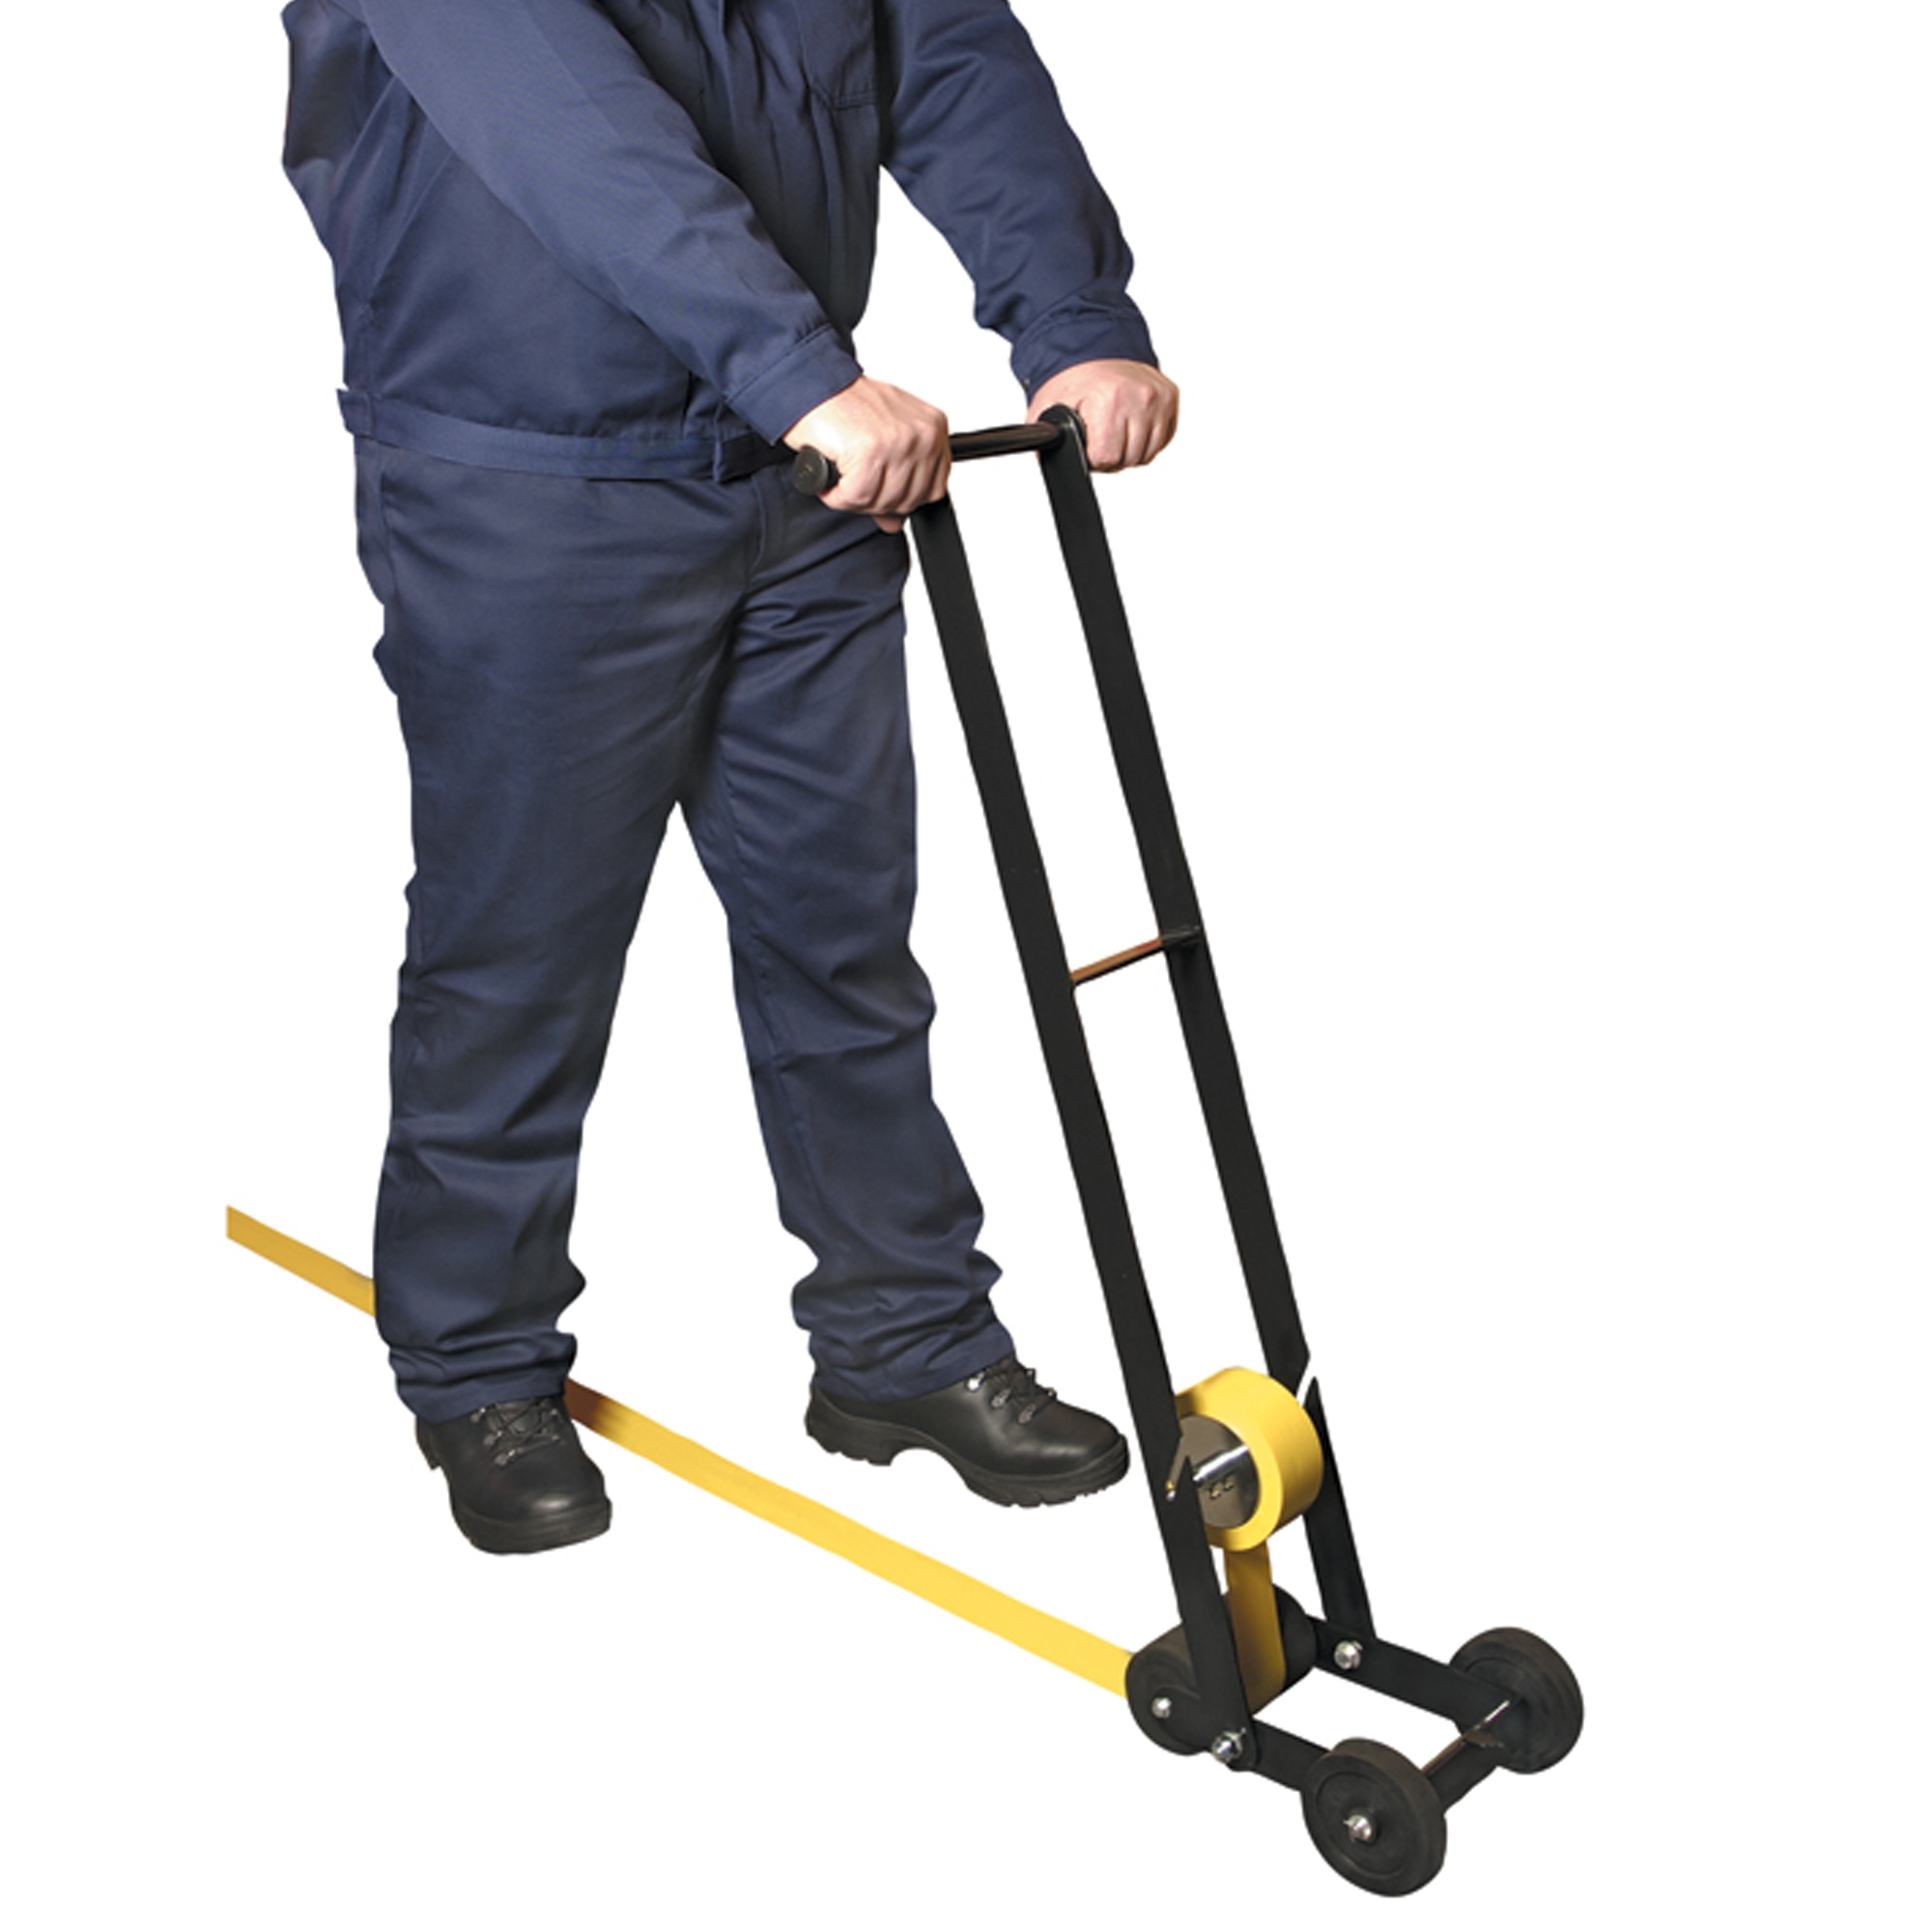 Lane Marking Floor Tape Applicator